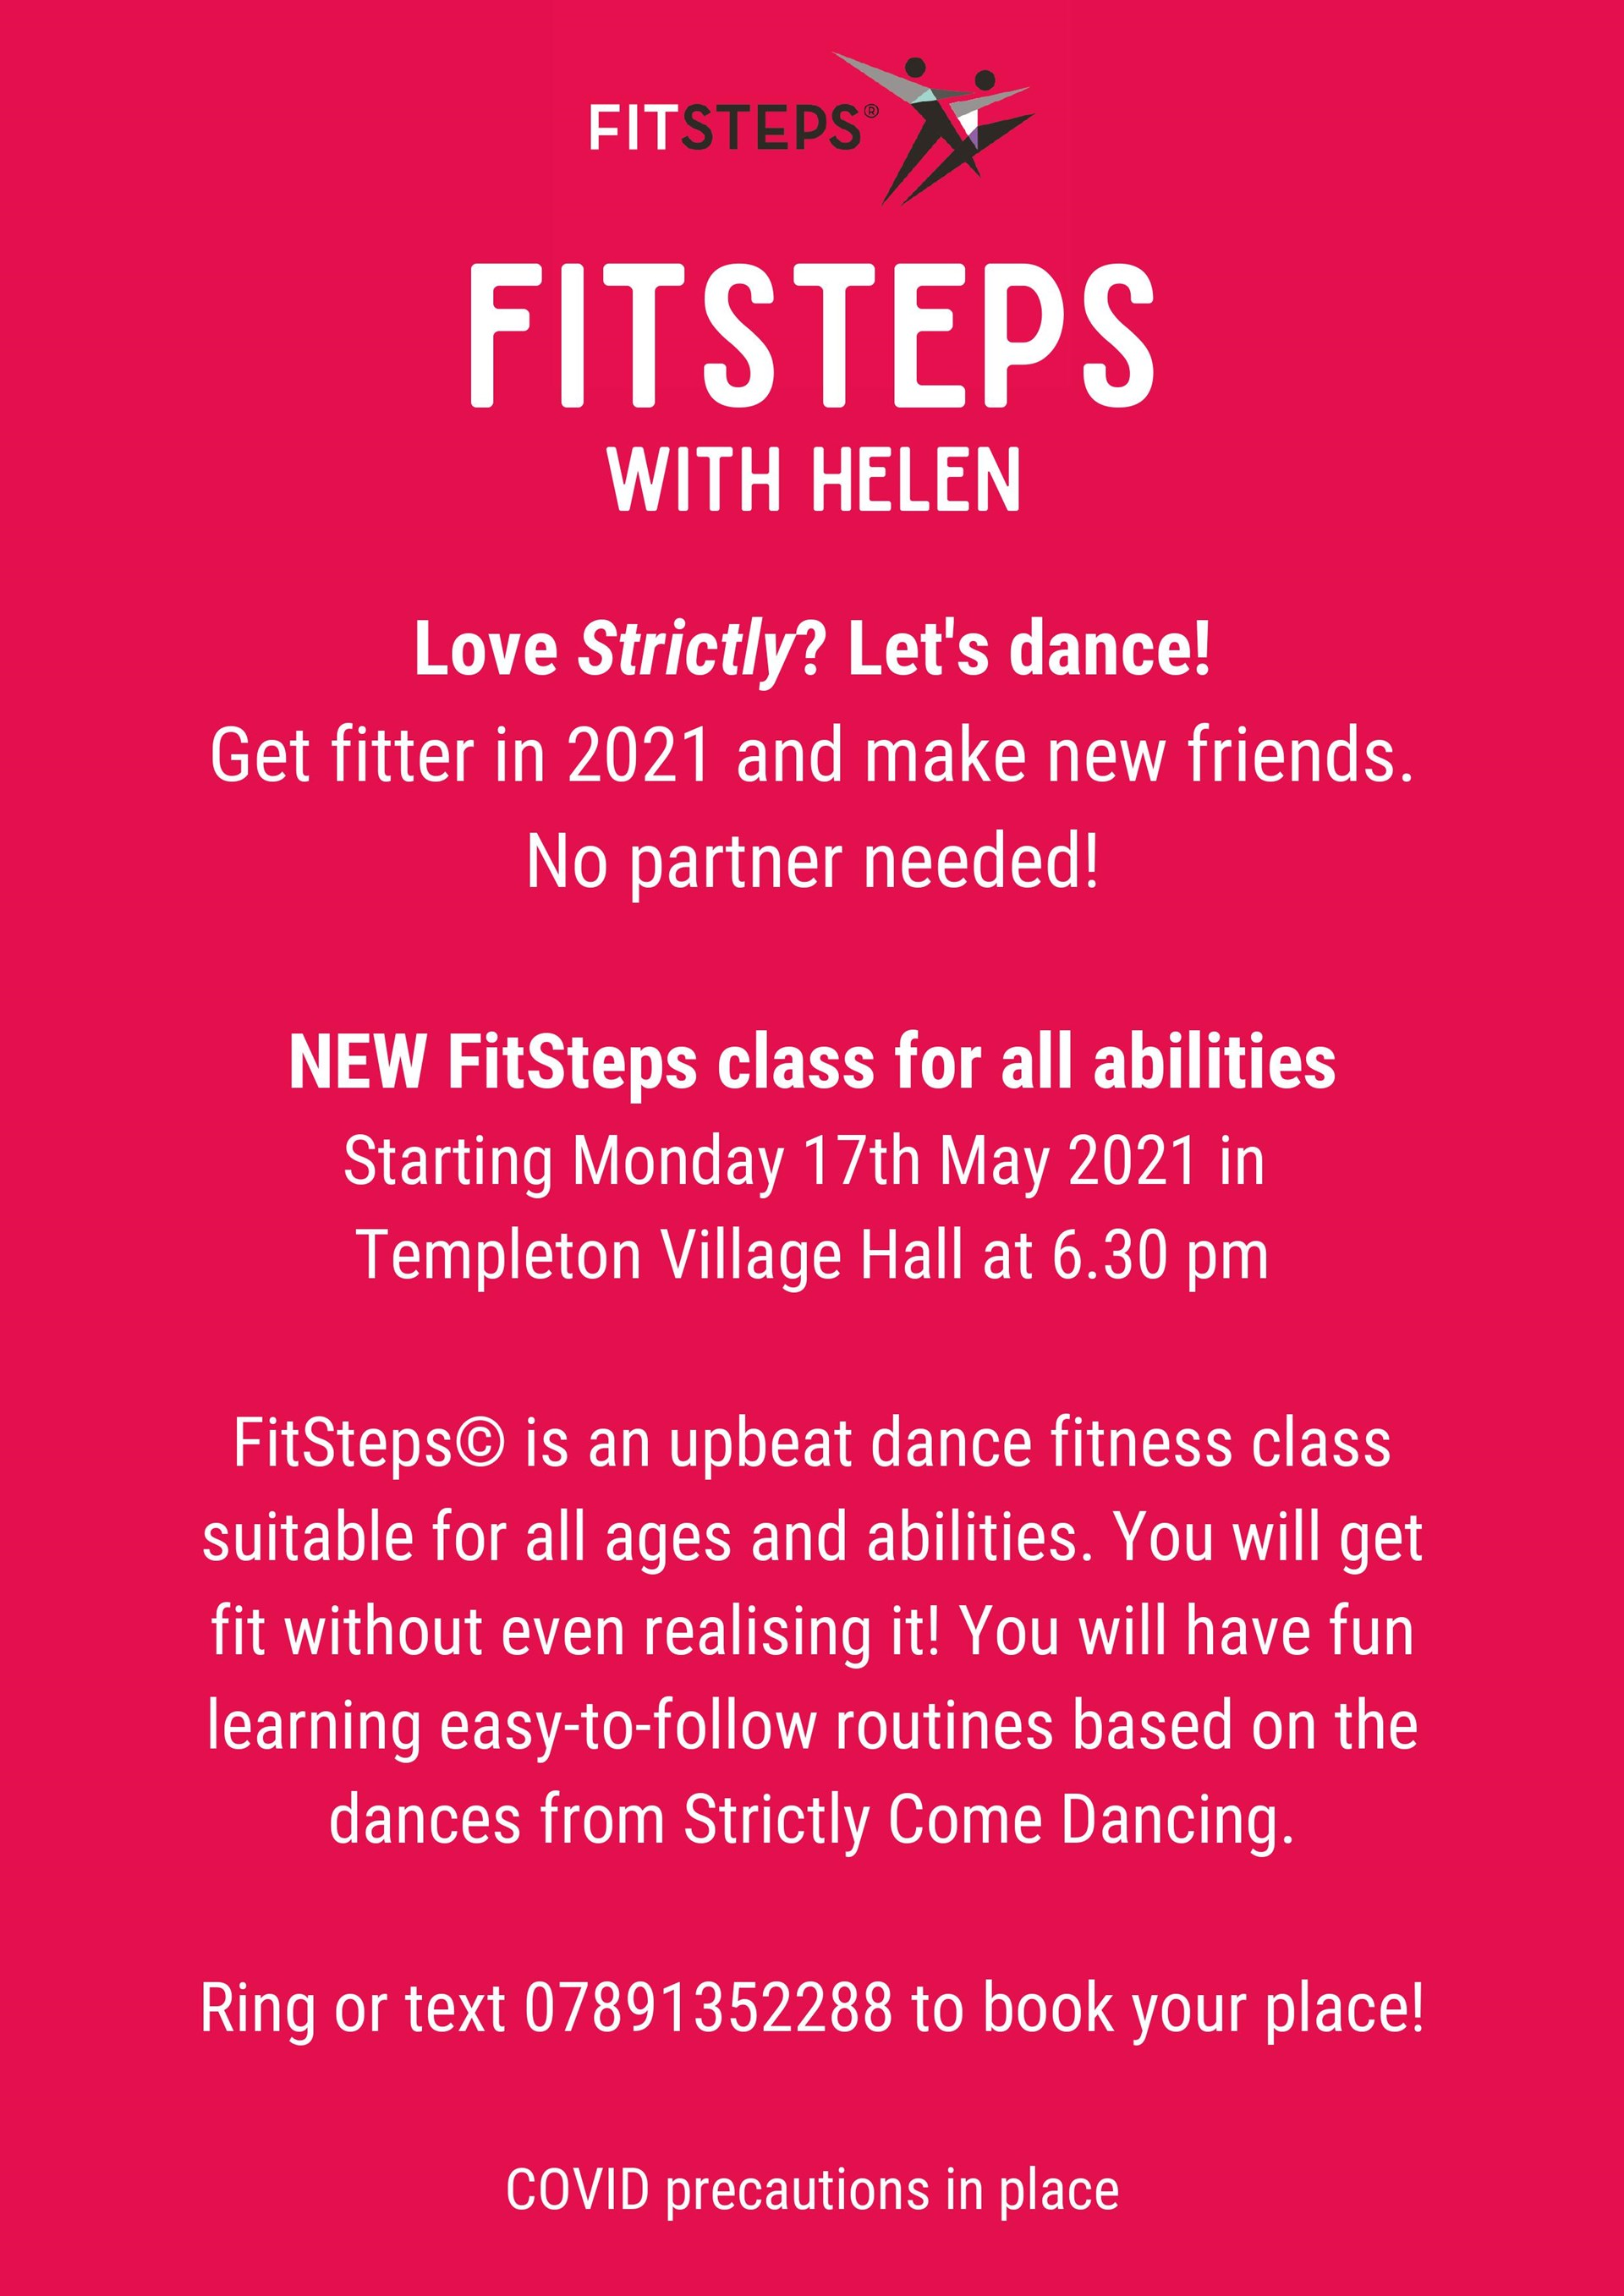 Strictly Fitsteps - startinig Monday evenings from 17th May